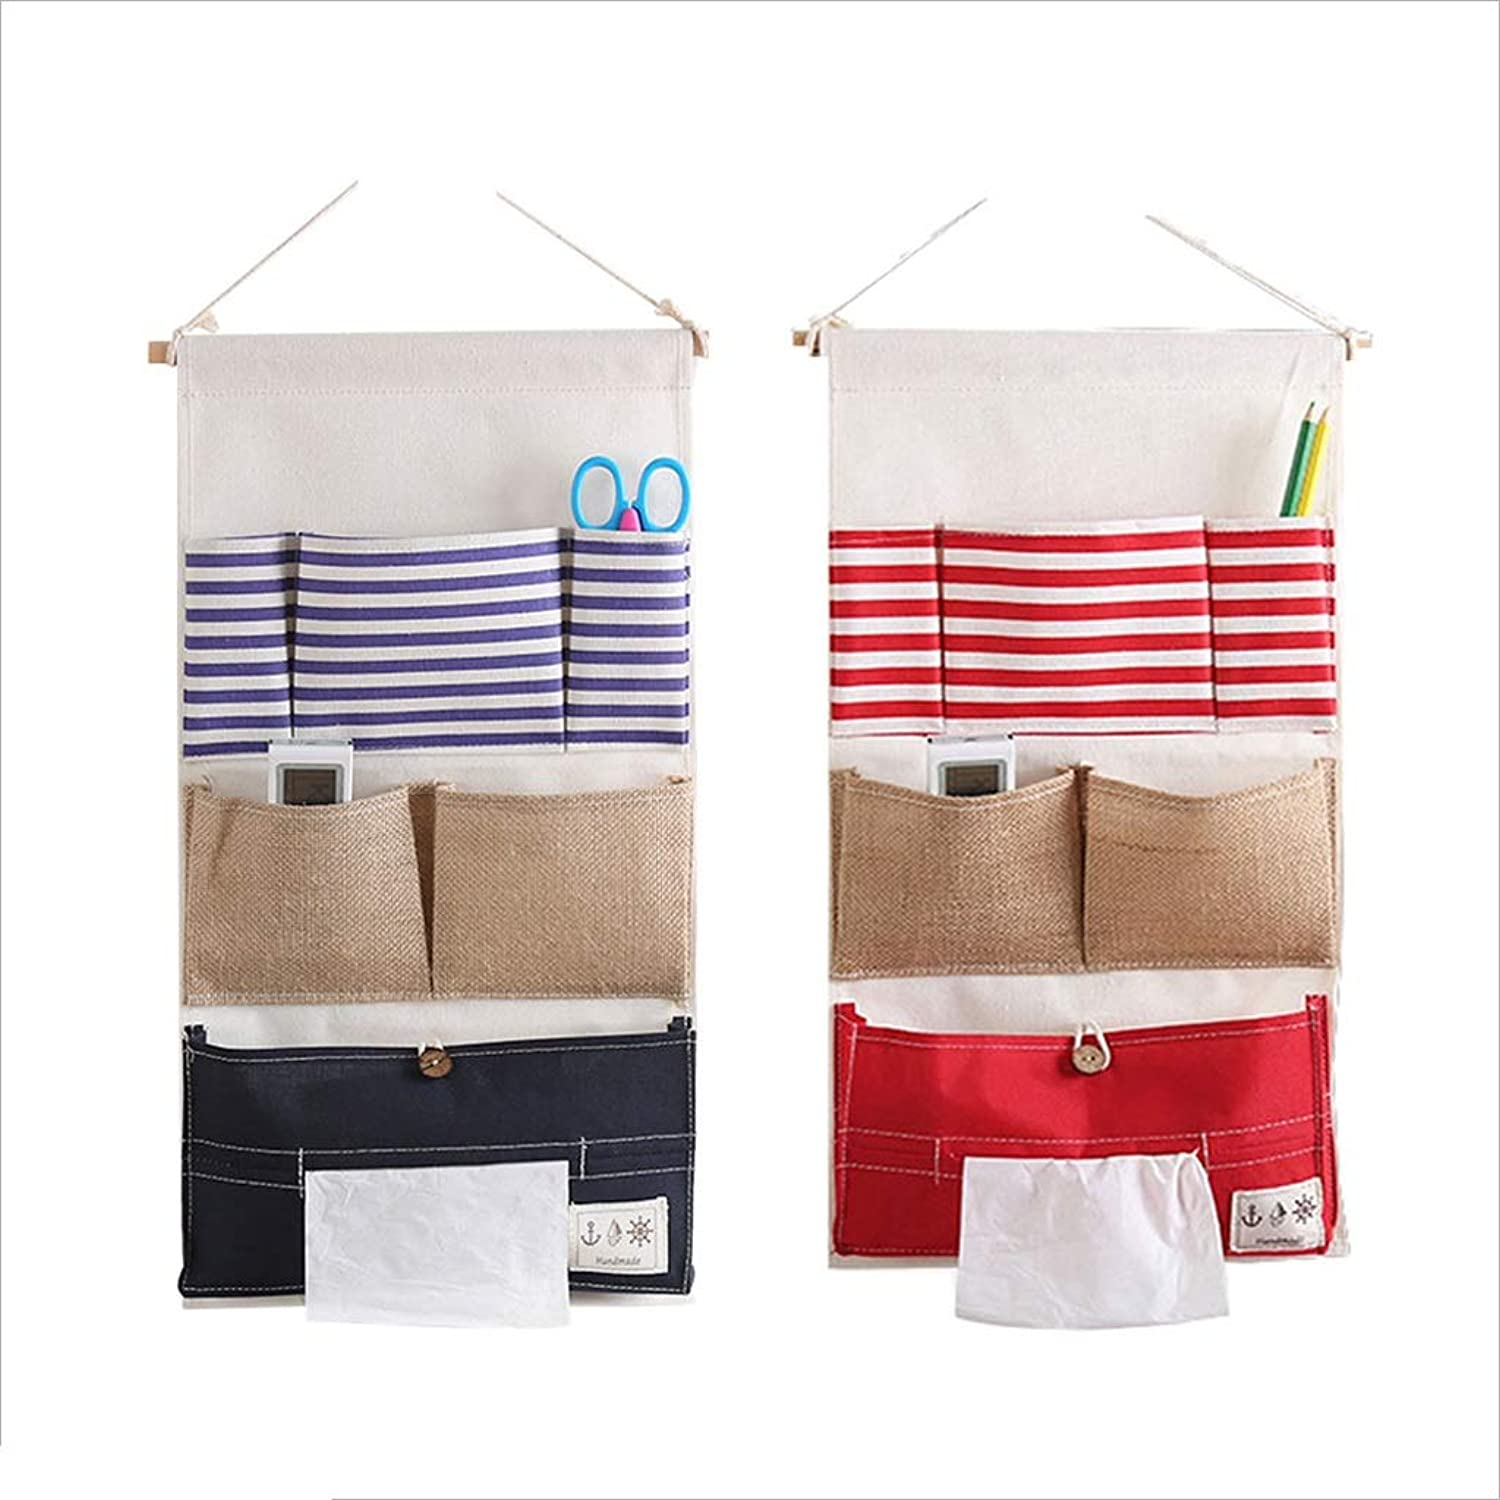 Storage Bag, 2 Wall-mounted Storage Bags With 6 Pockets